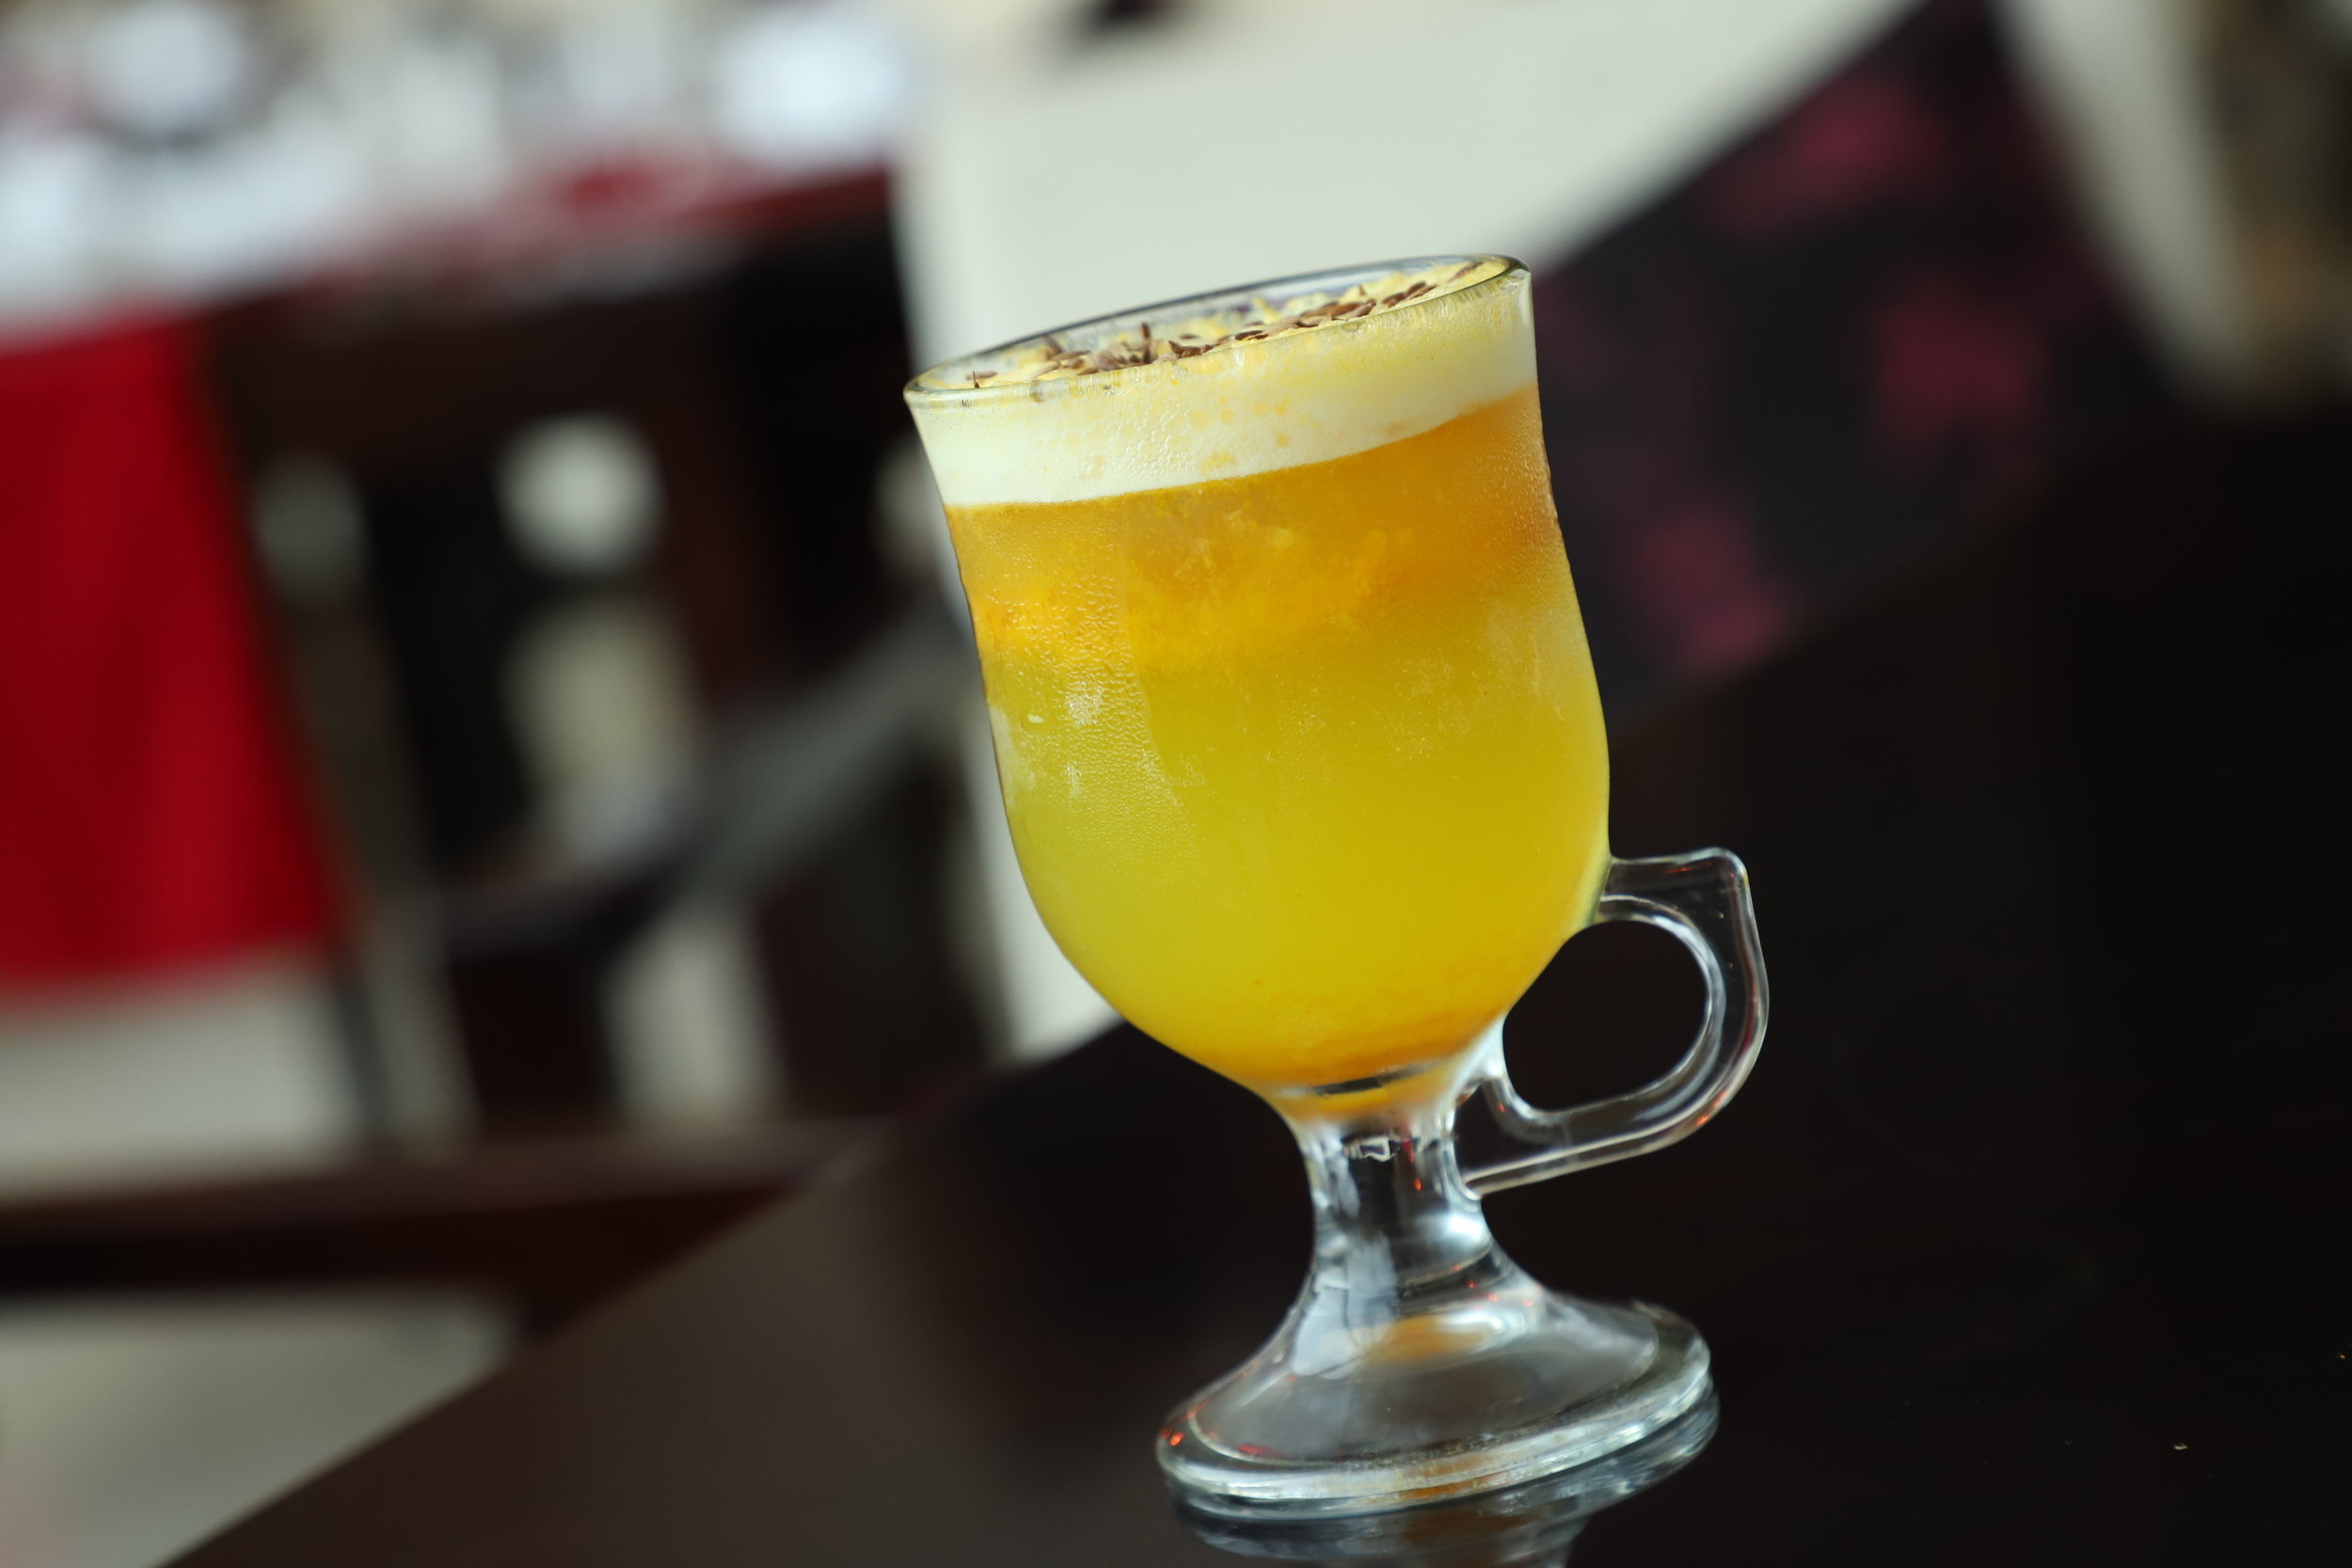 Back to Square: With Gin and Turmeric